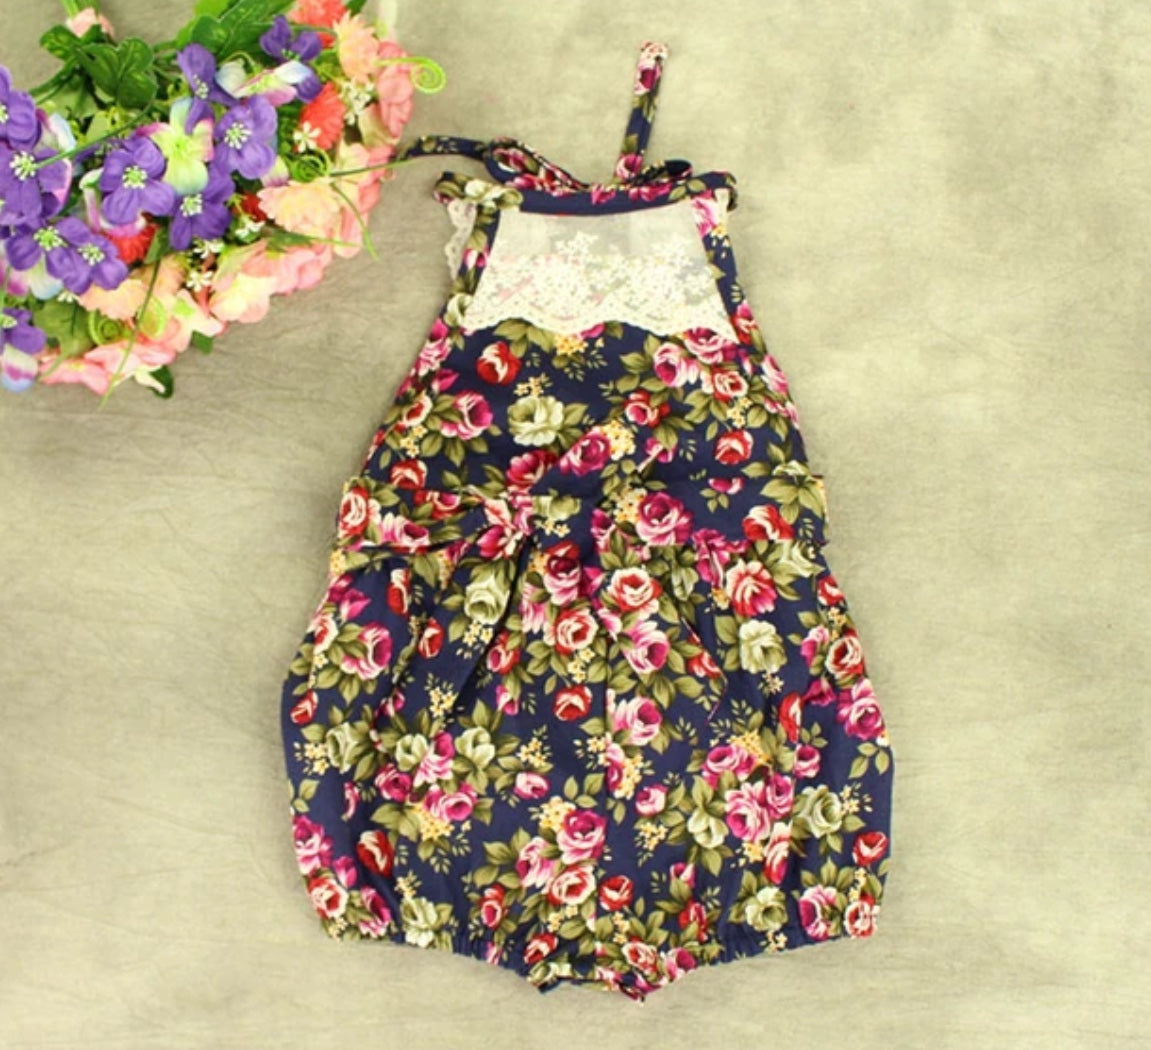 Casual Baby Girls Flower Romper Jumpsuit Clothes - bump, baby and beyond